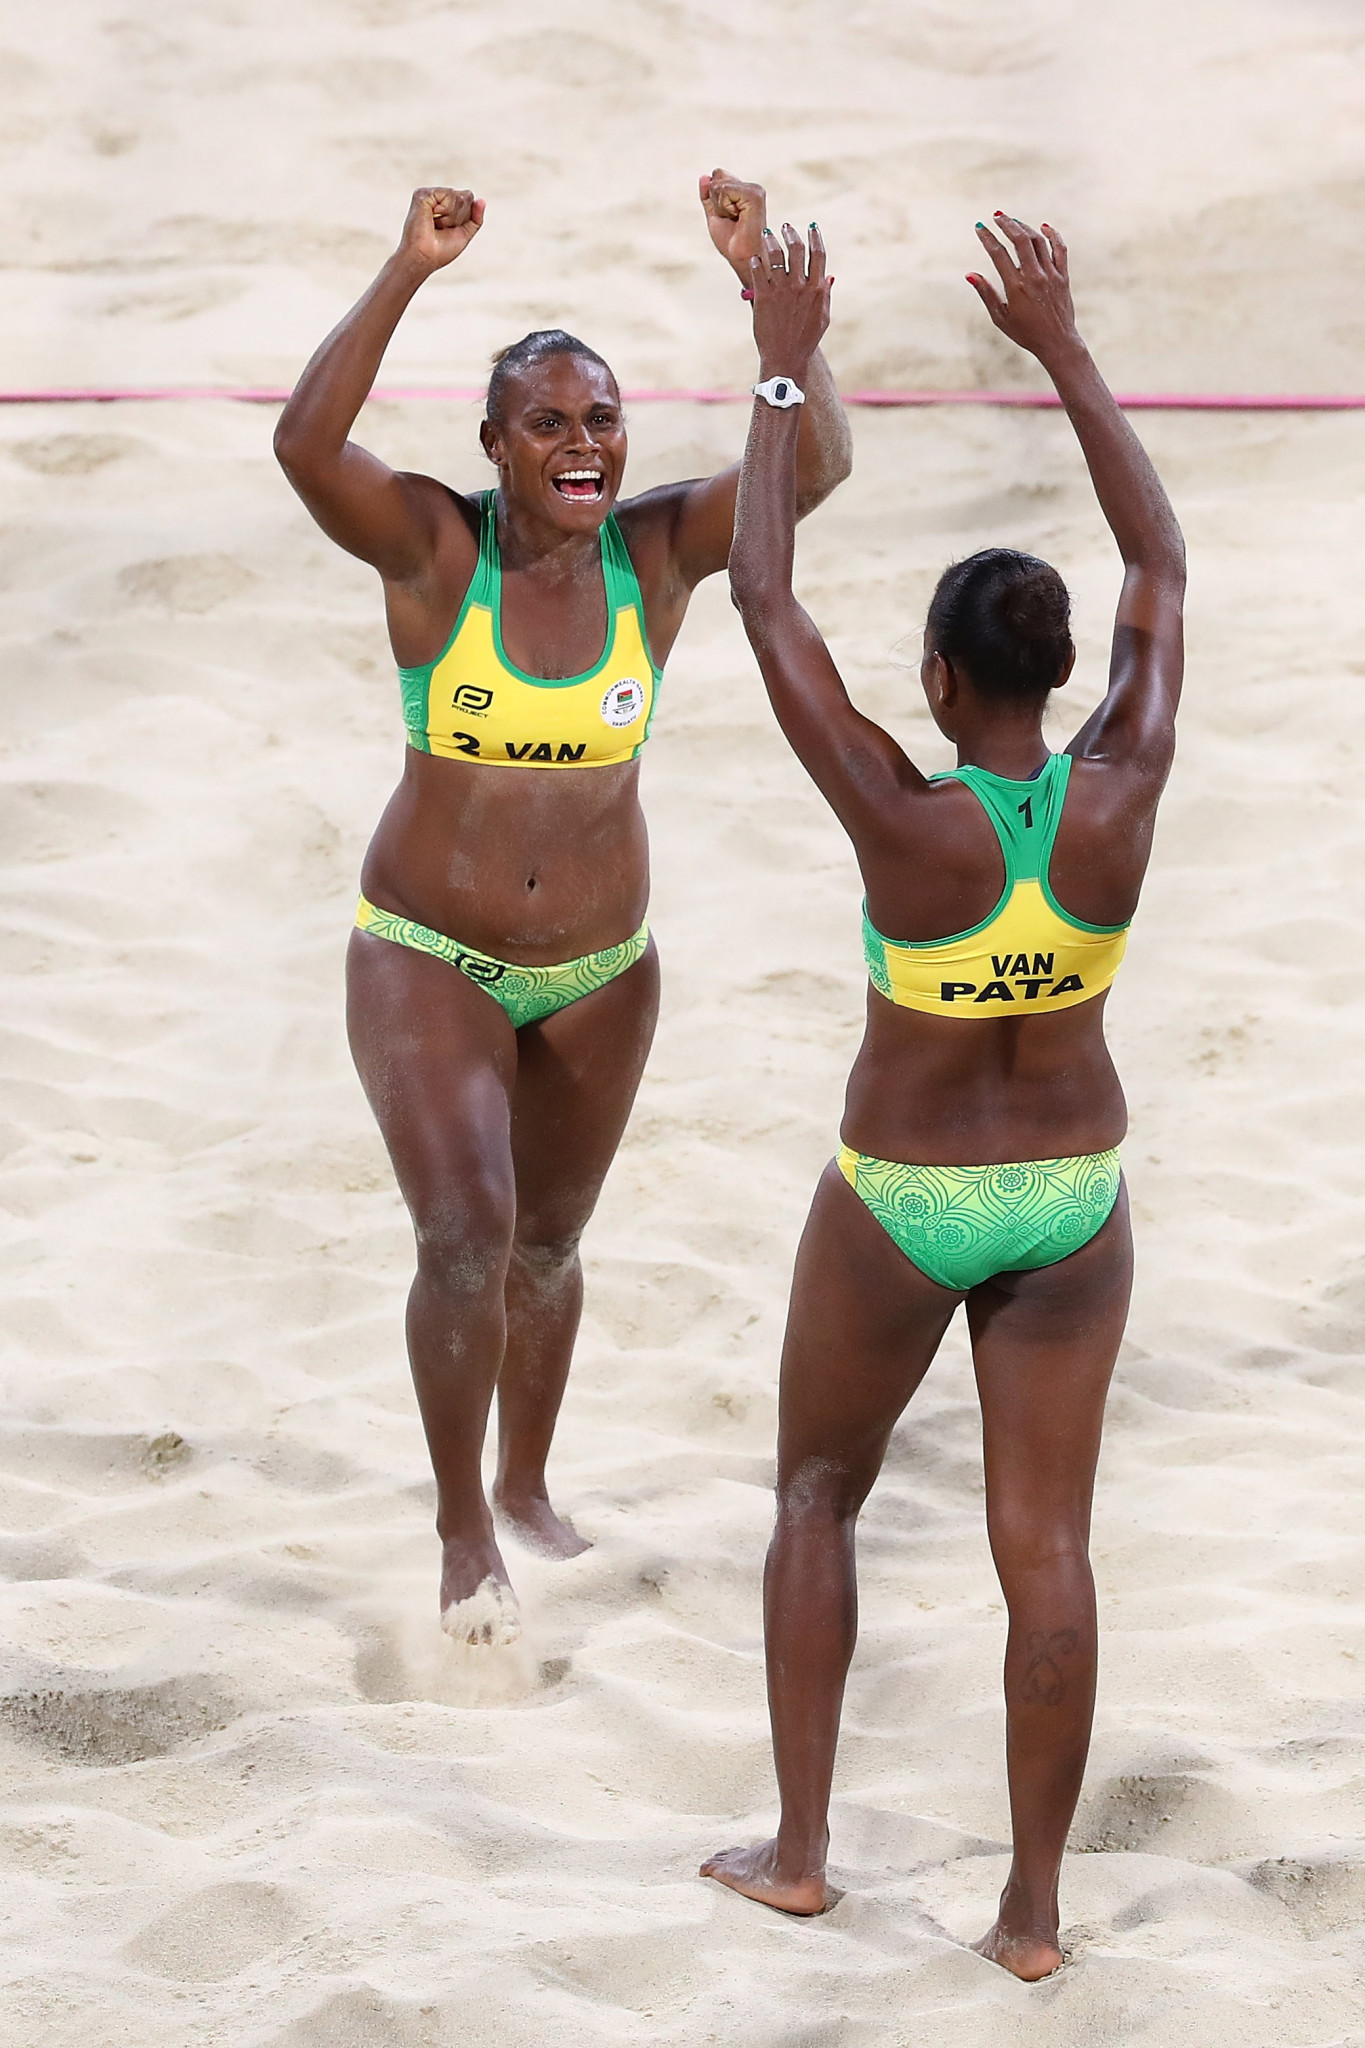 Vanuatu won their first Commonwealth Games medals at Gold Coast 2018 ©Getty Images